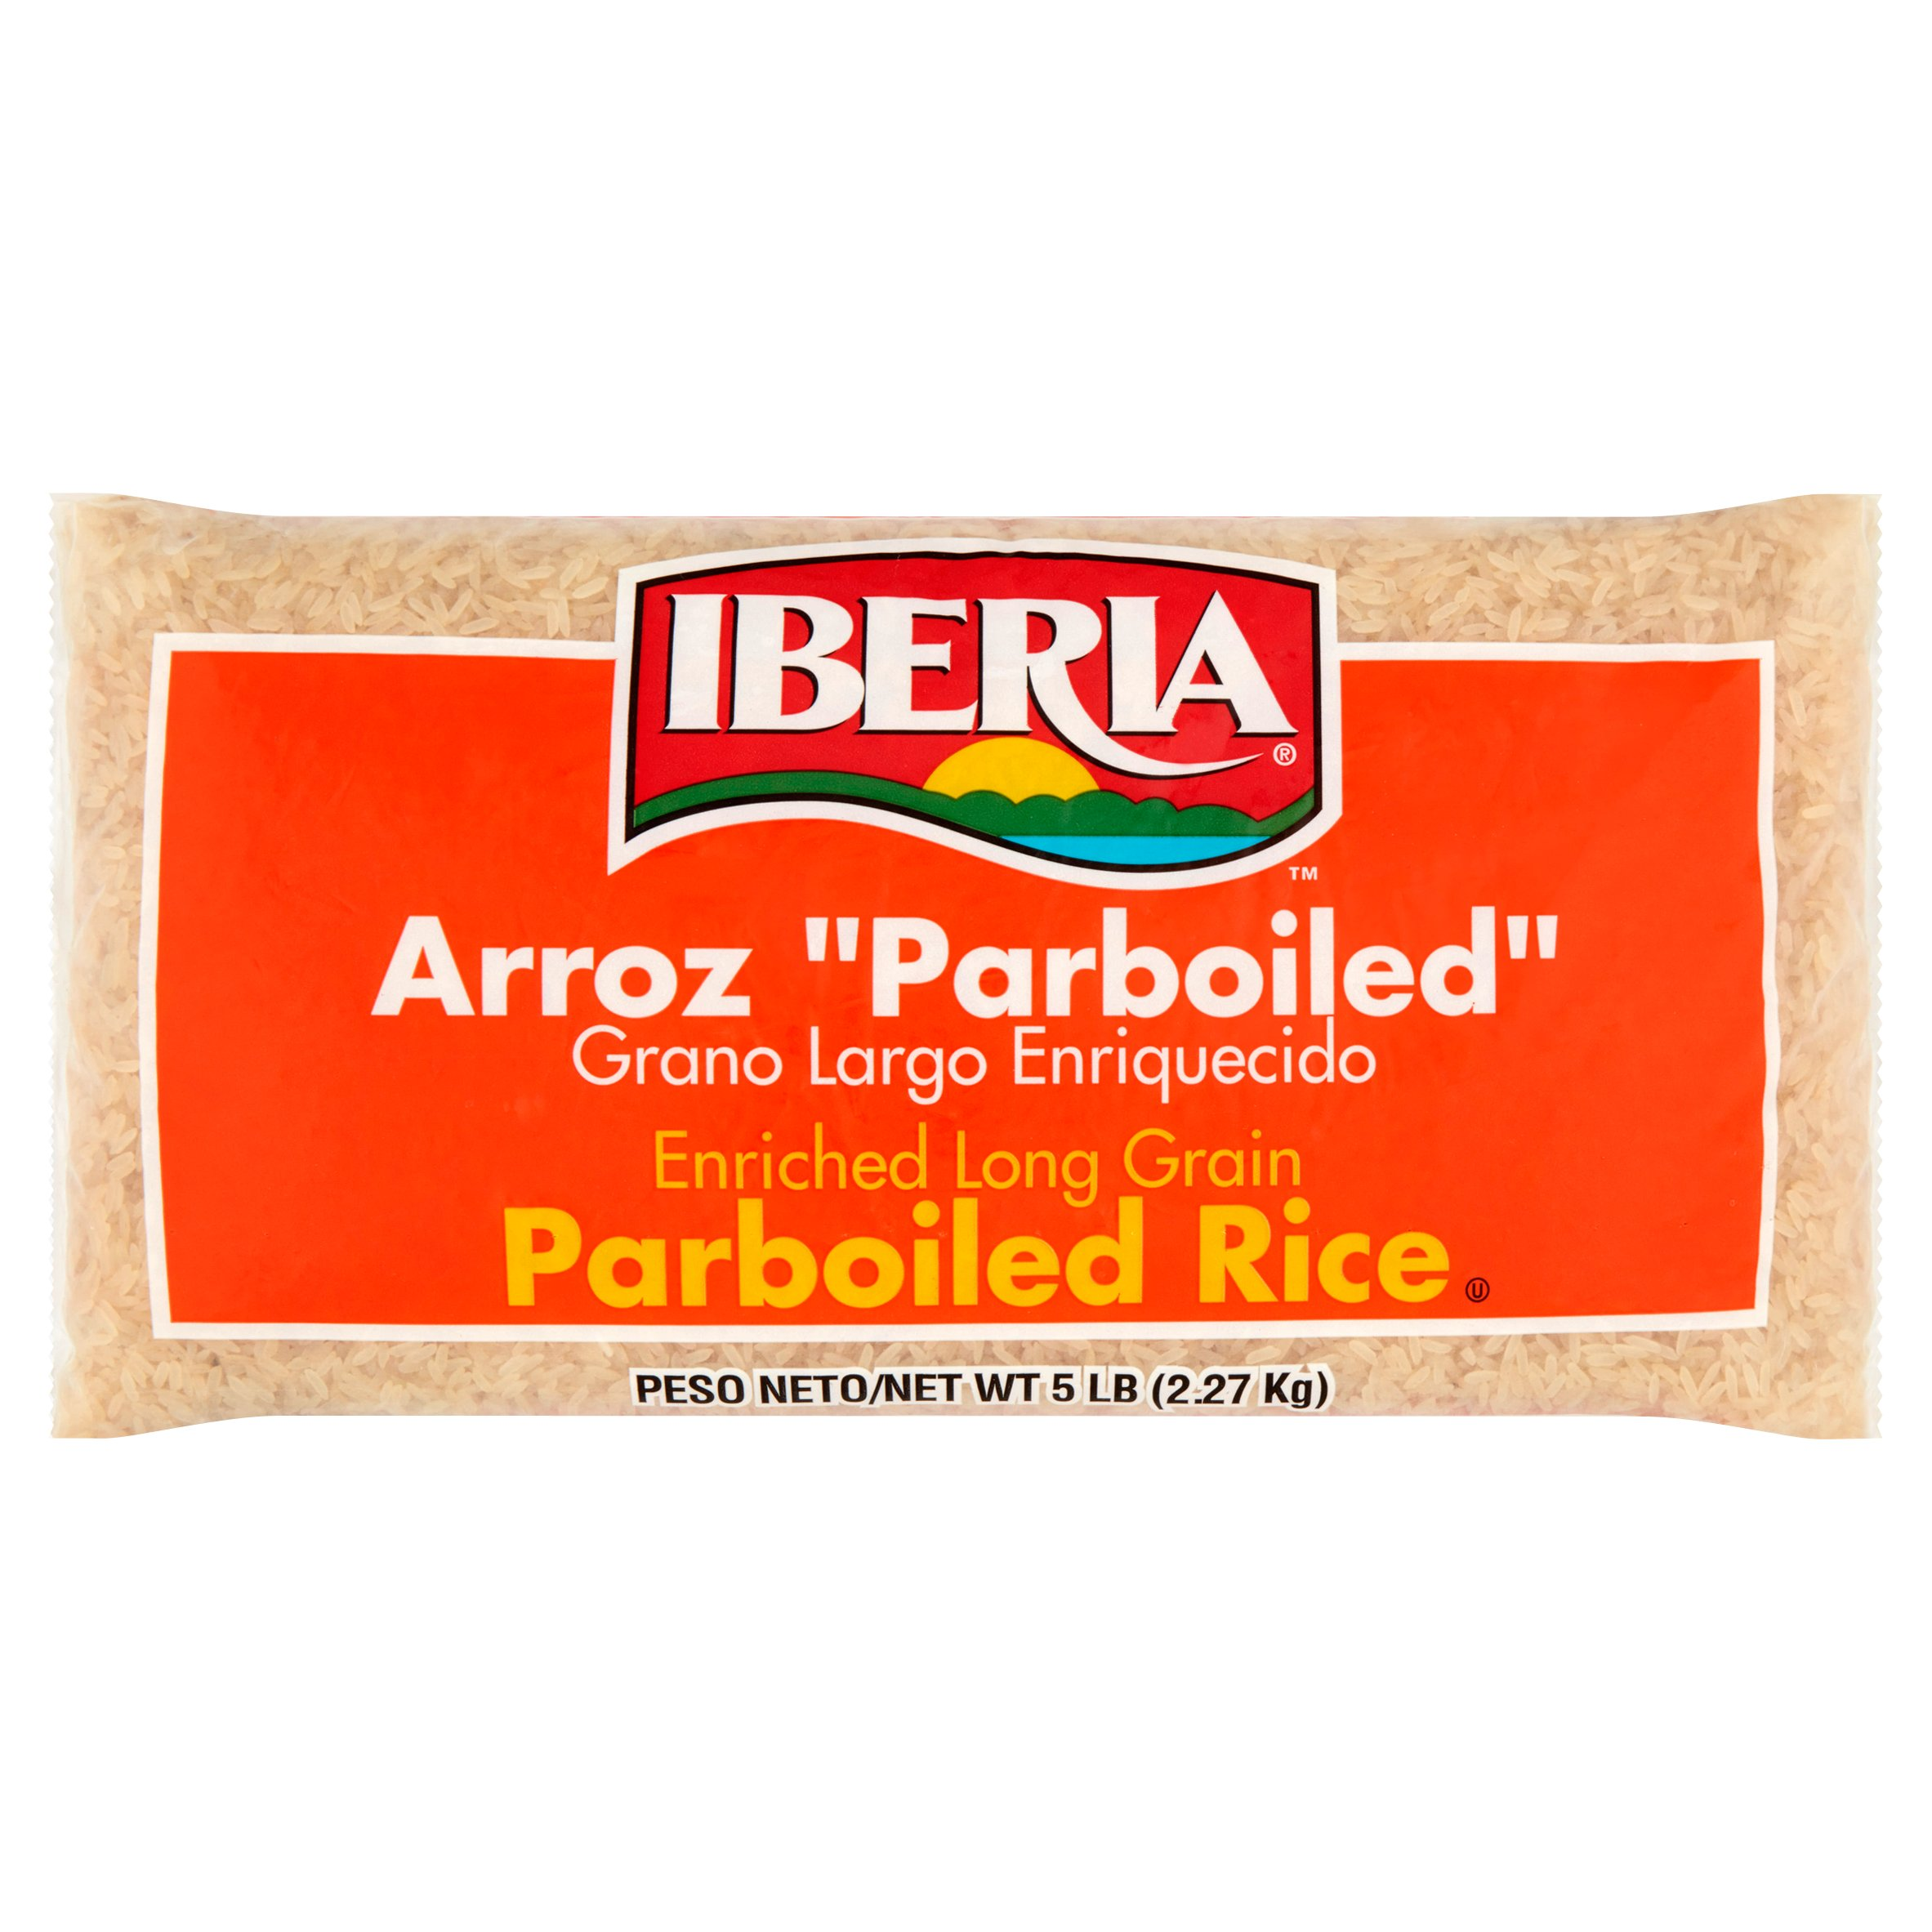 Iberia Parboiled Long Grain Rice, 5 lb by Iberia World Foods Corp.